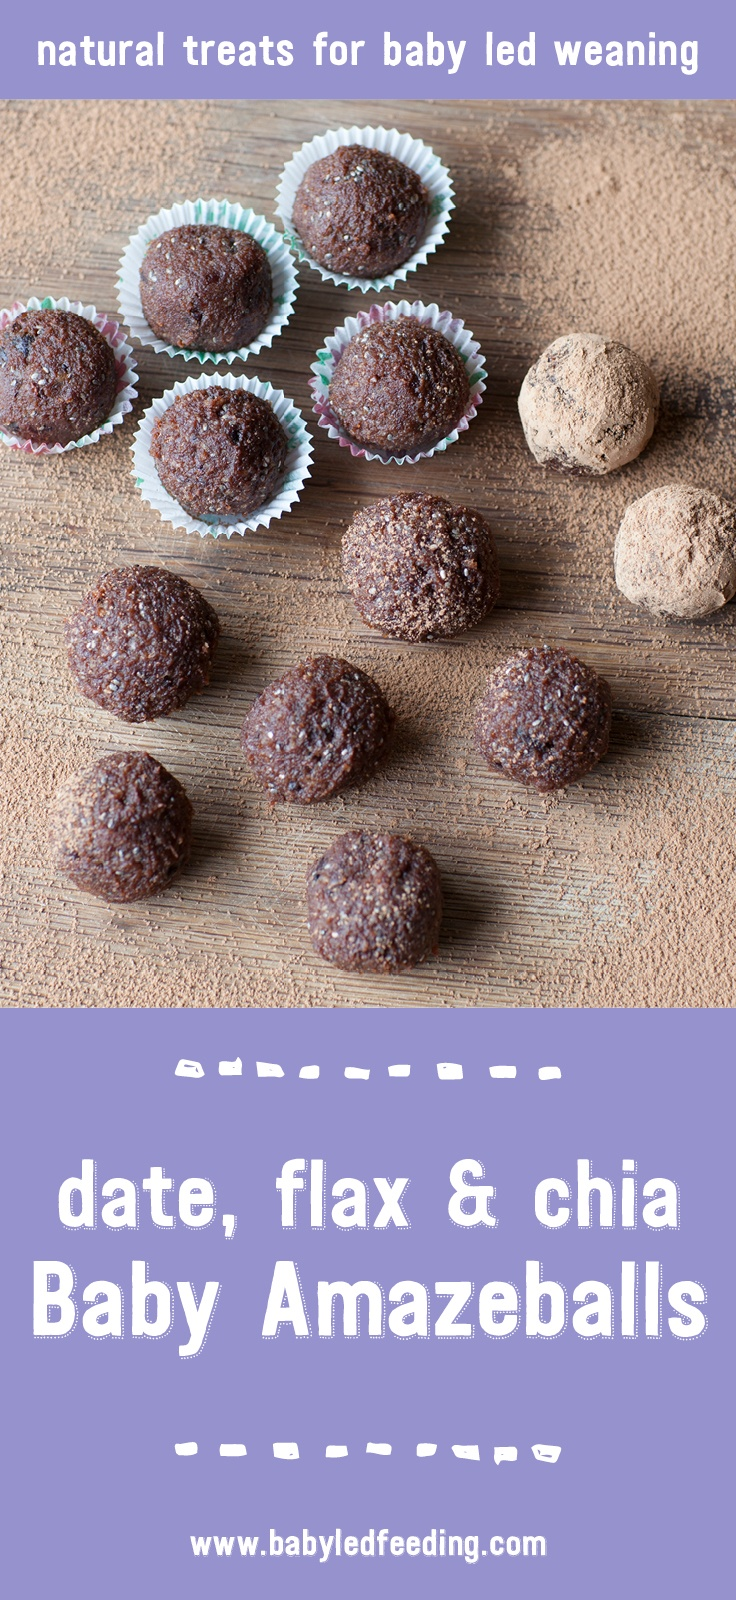 10 minute Baby Amazeballs! Date, Flax and Chia rolled into a healthy finger food for babies and toddlers. VEGAN, vegetarian, refined sugar free and high in protein, fiber, and magnesium.This easy and healthy recipe works great as a sweet appetizer freezer friendly. No cooking required! #amazeballs #babyledfeeding #appetizer #freezerfood #fingerfood @via https://www.pinterest.ie/babyledfeeding/